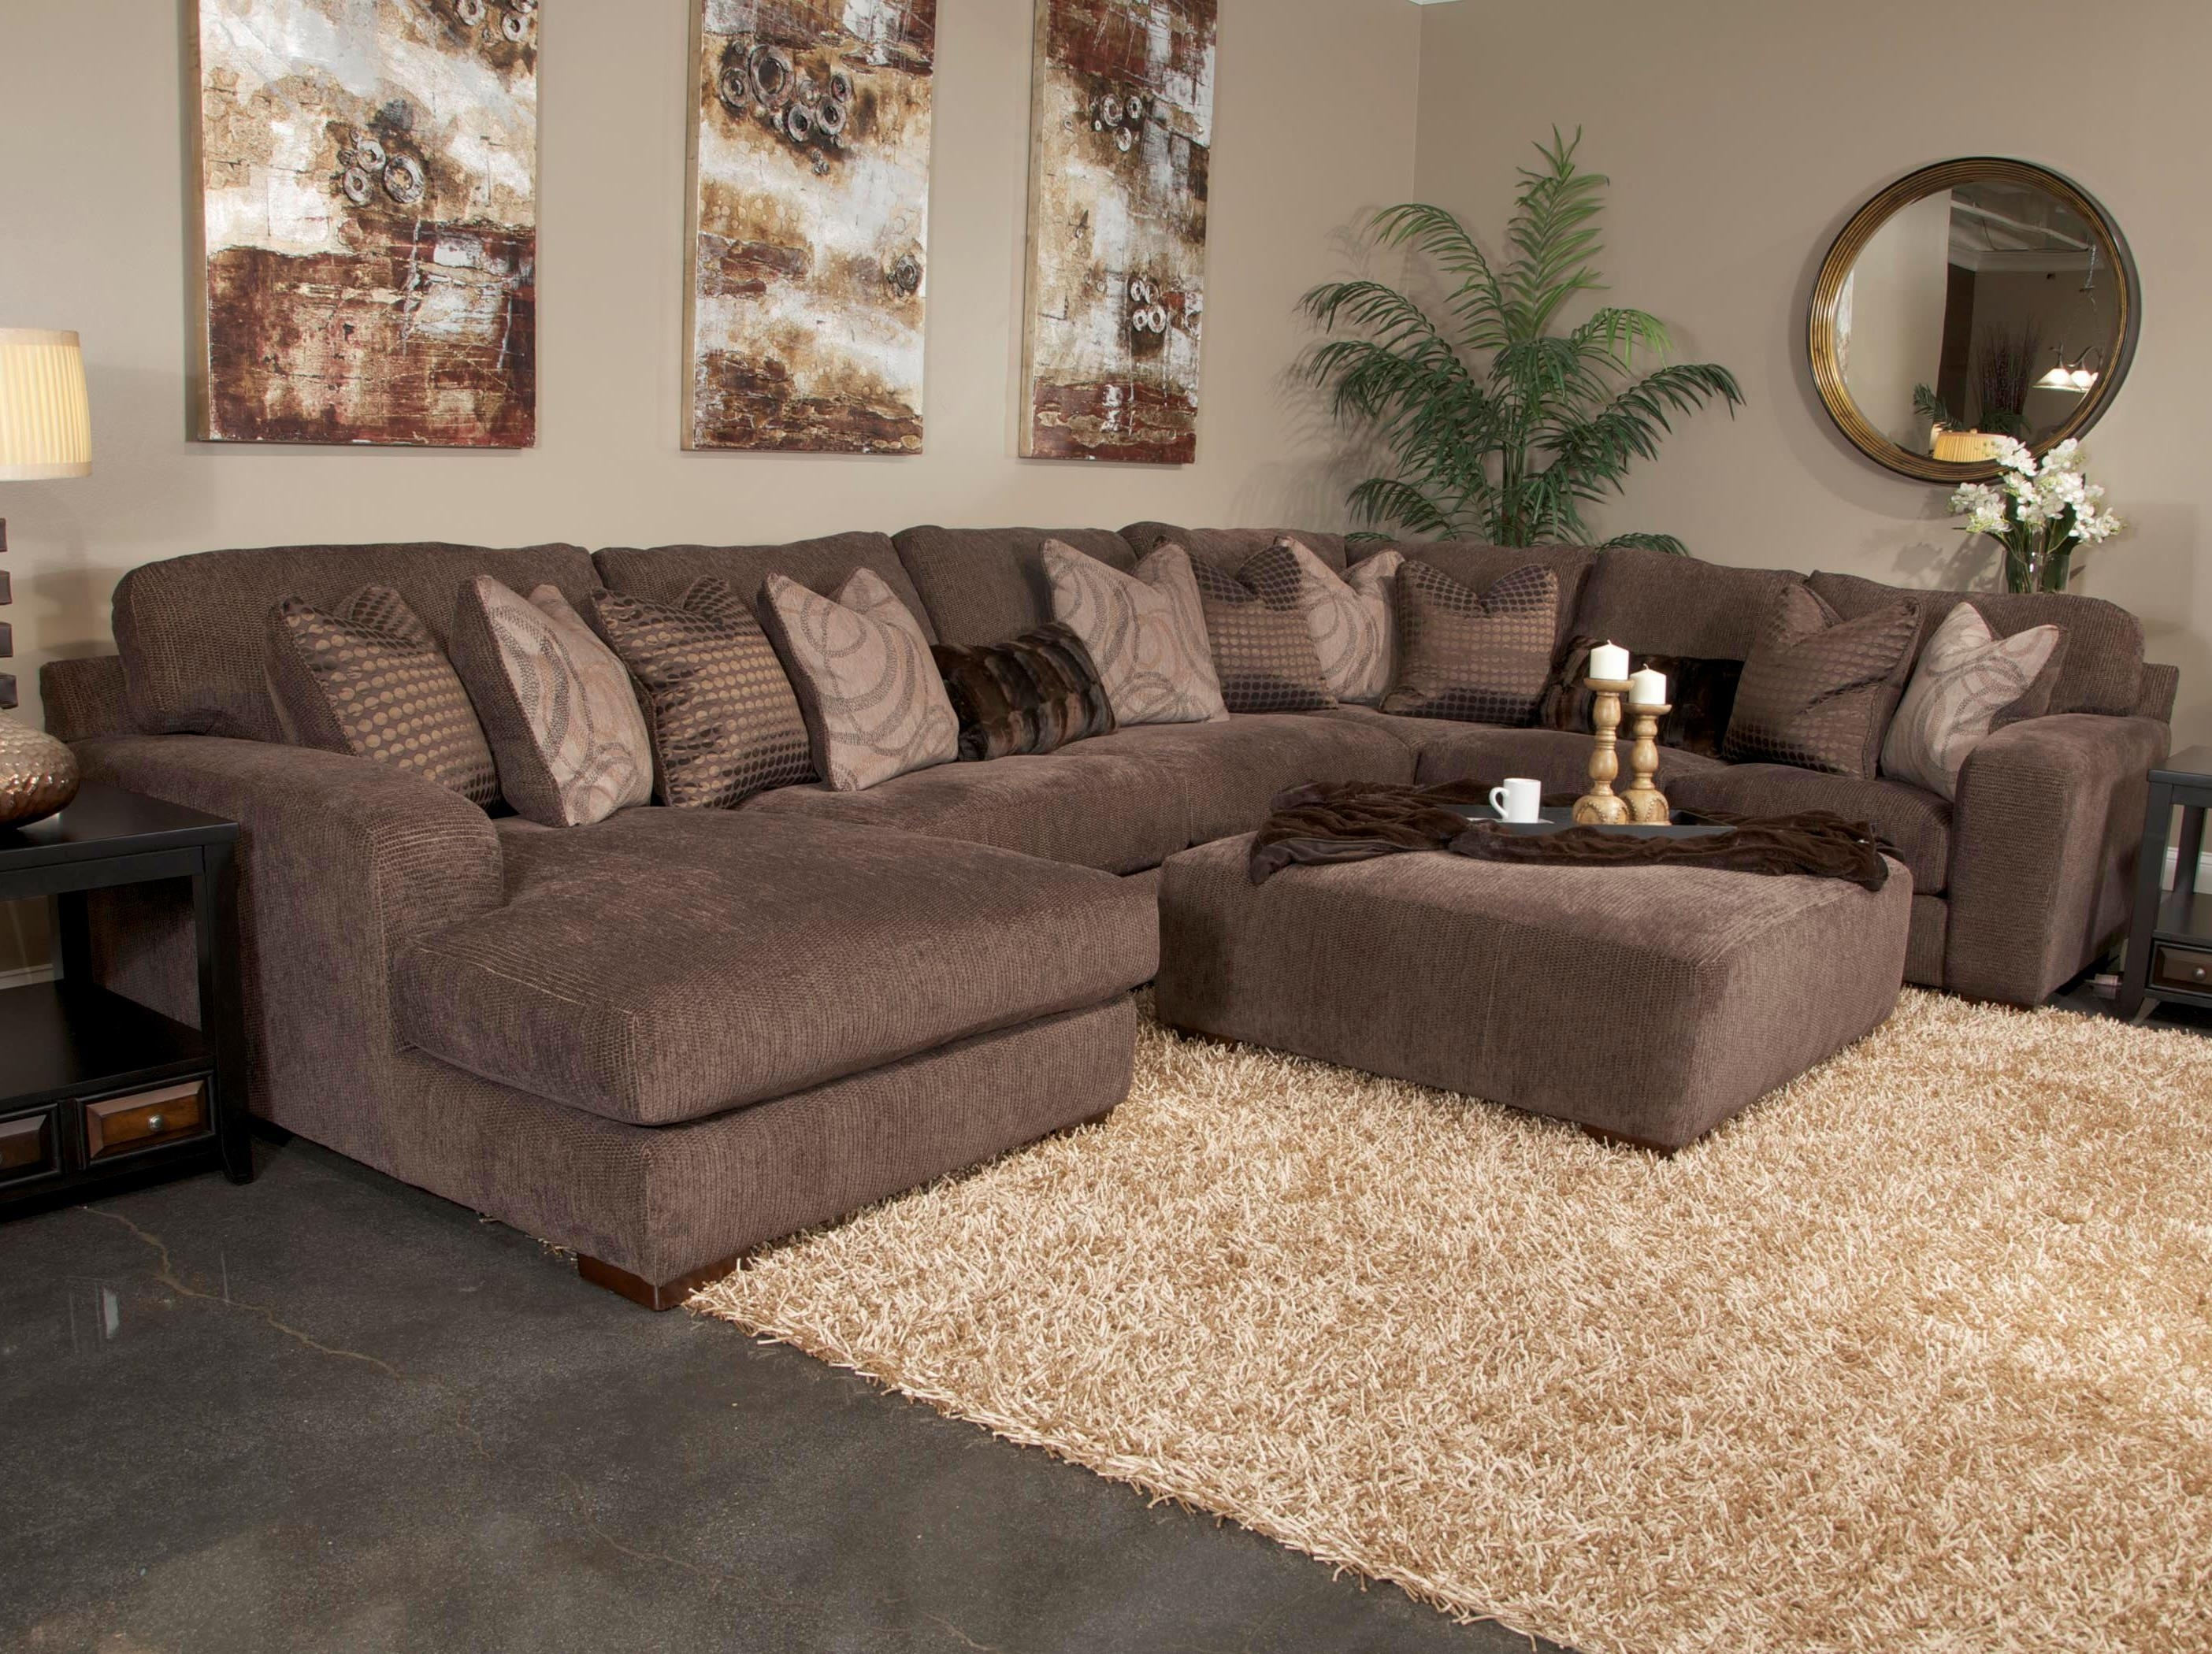 New Big Lots Sectional Sofa (34 Photos) | Clubanfi In Gardiners Sectional Sofas (View 4 of 10)